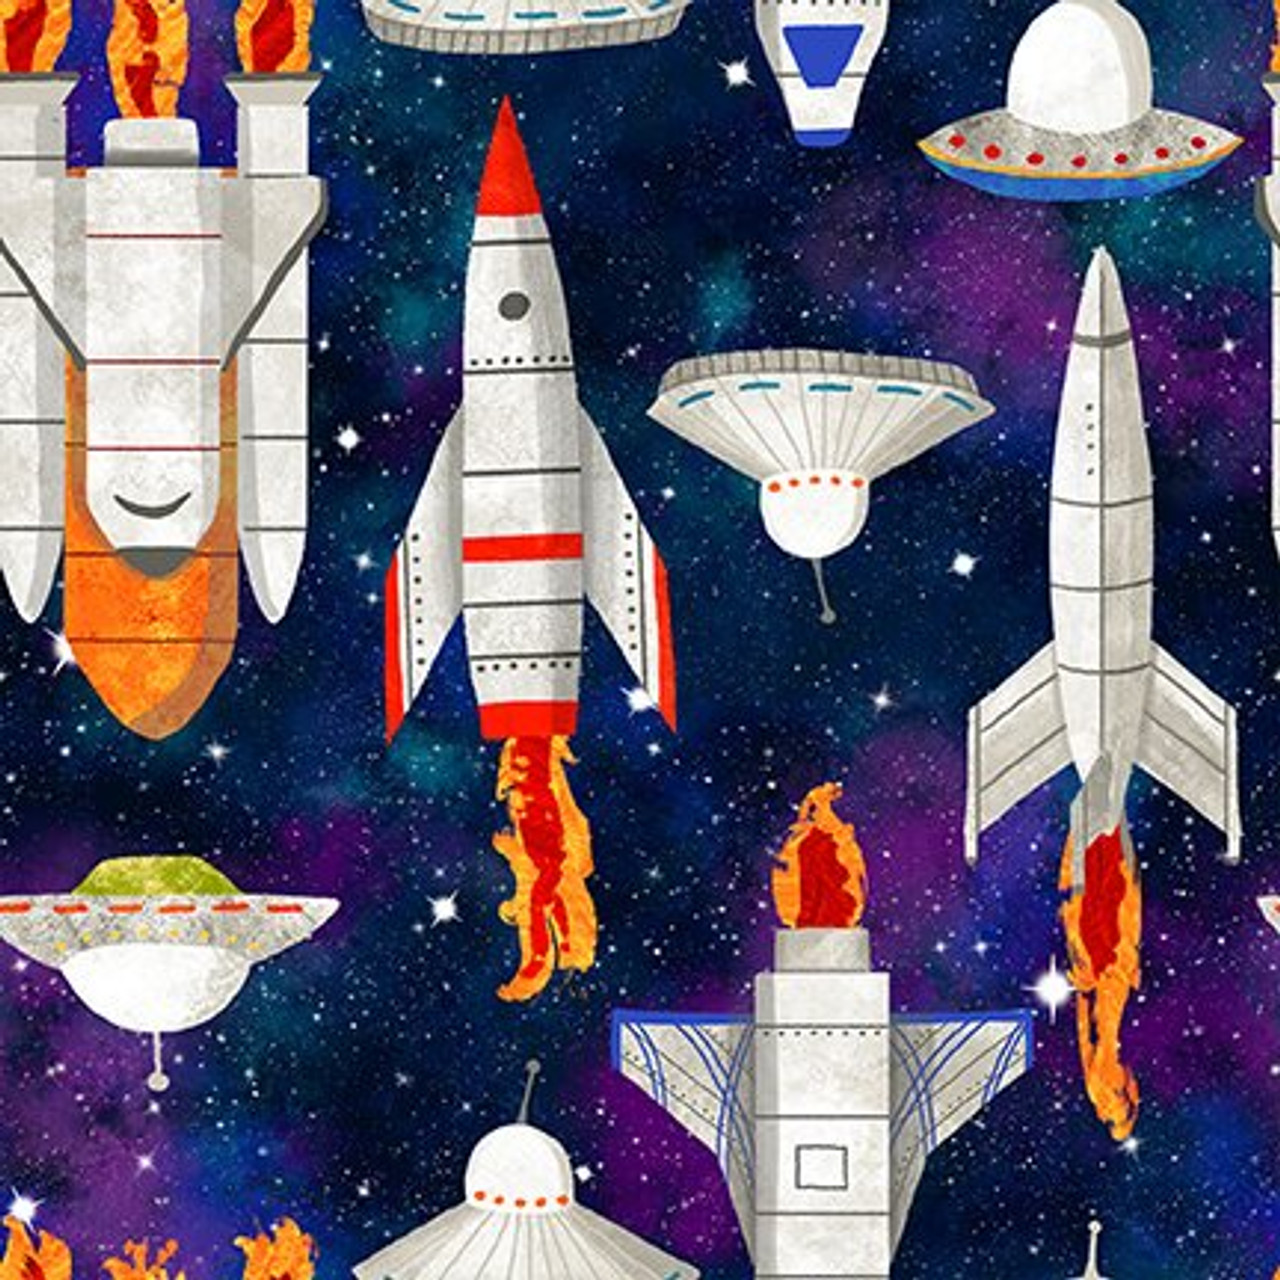 Lost in Space by Alyssa Kays